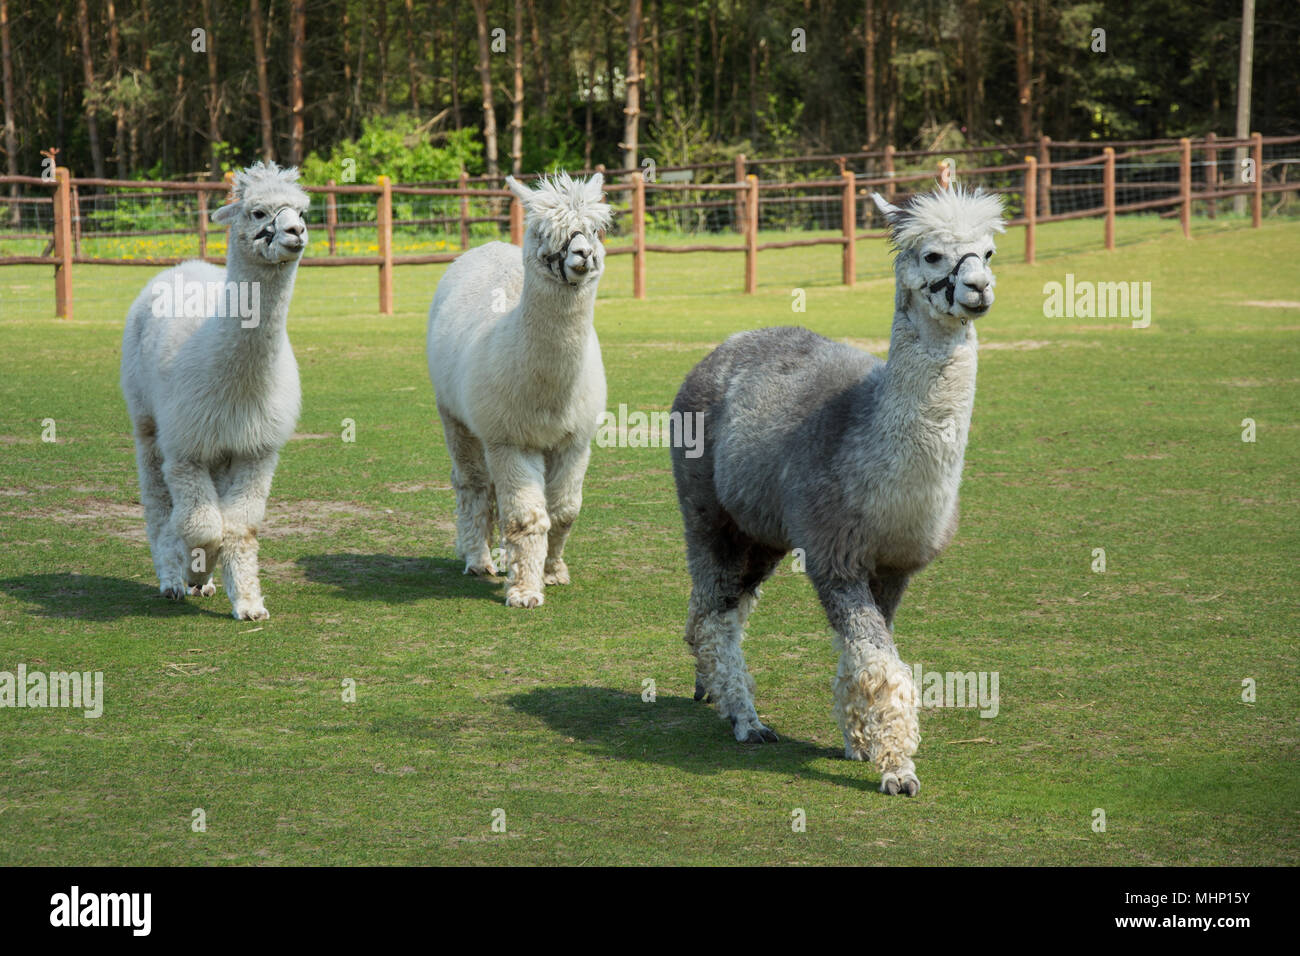 Two white alpacas and one grey alpaca walking on green pasture Stock Photo